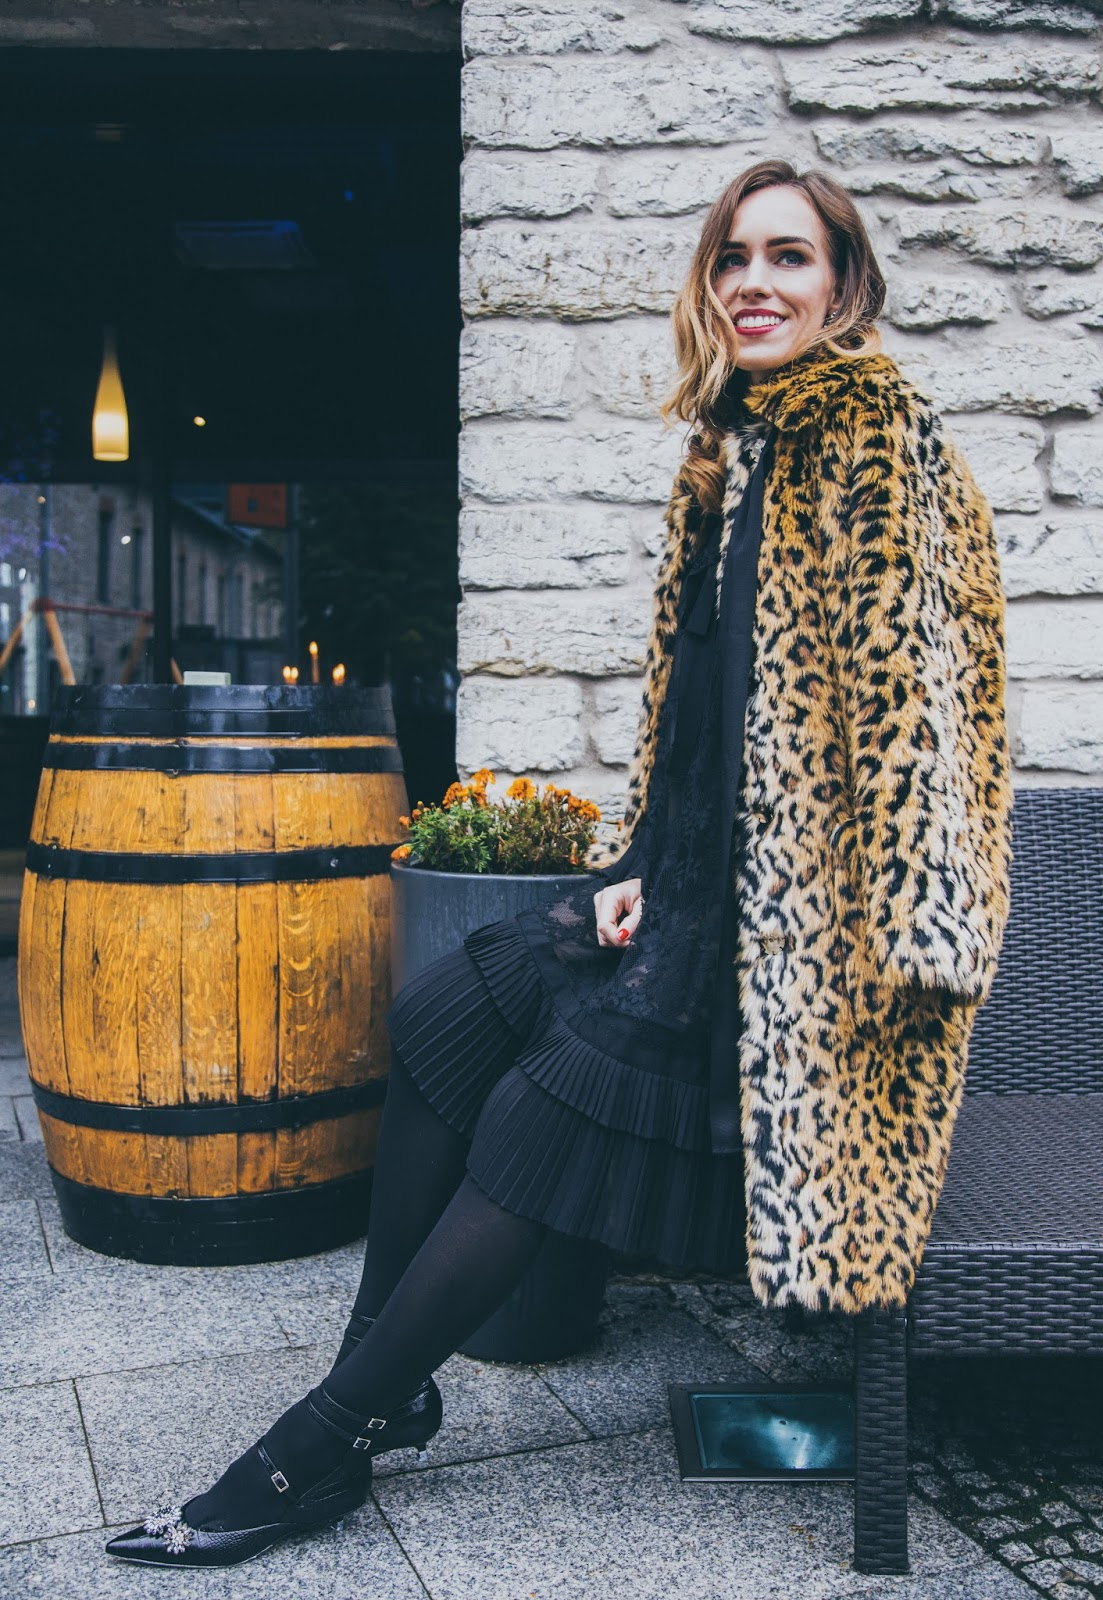 erdem x hm collaboration collection leopard coat outfit